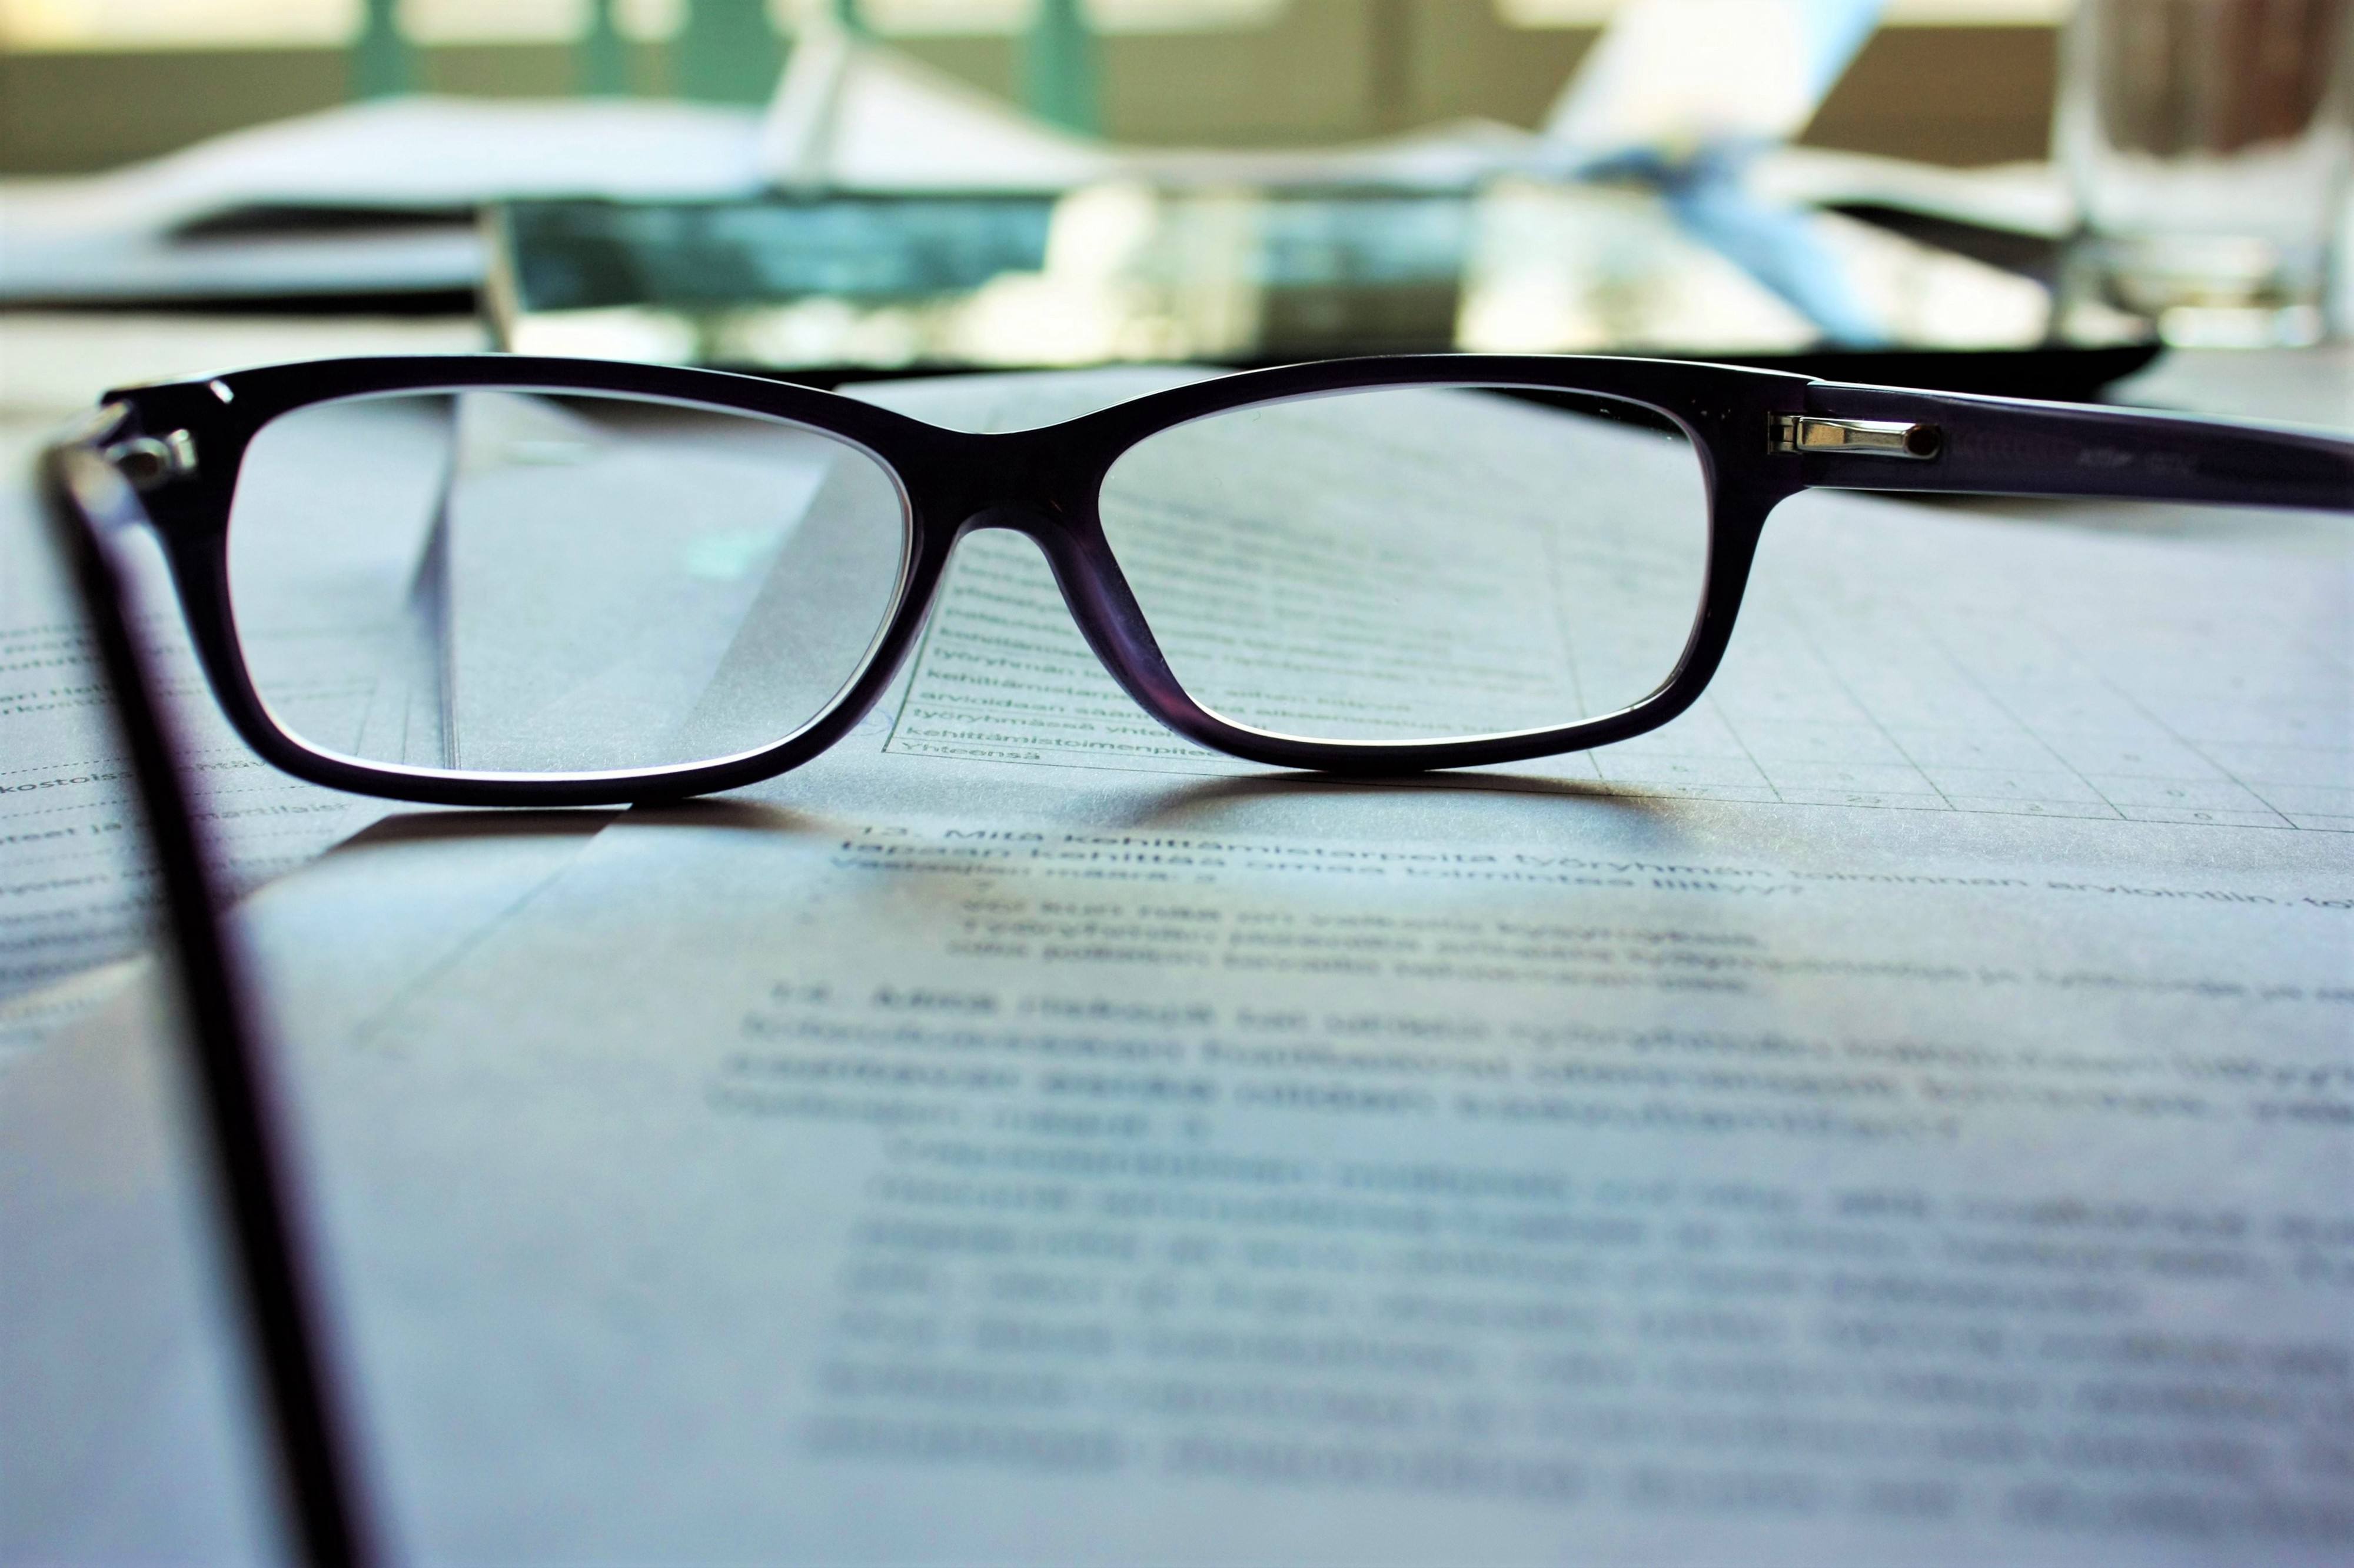 Black oval eye glasses on an out-of-focus stack of paper